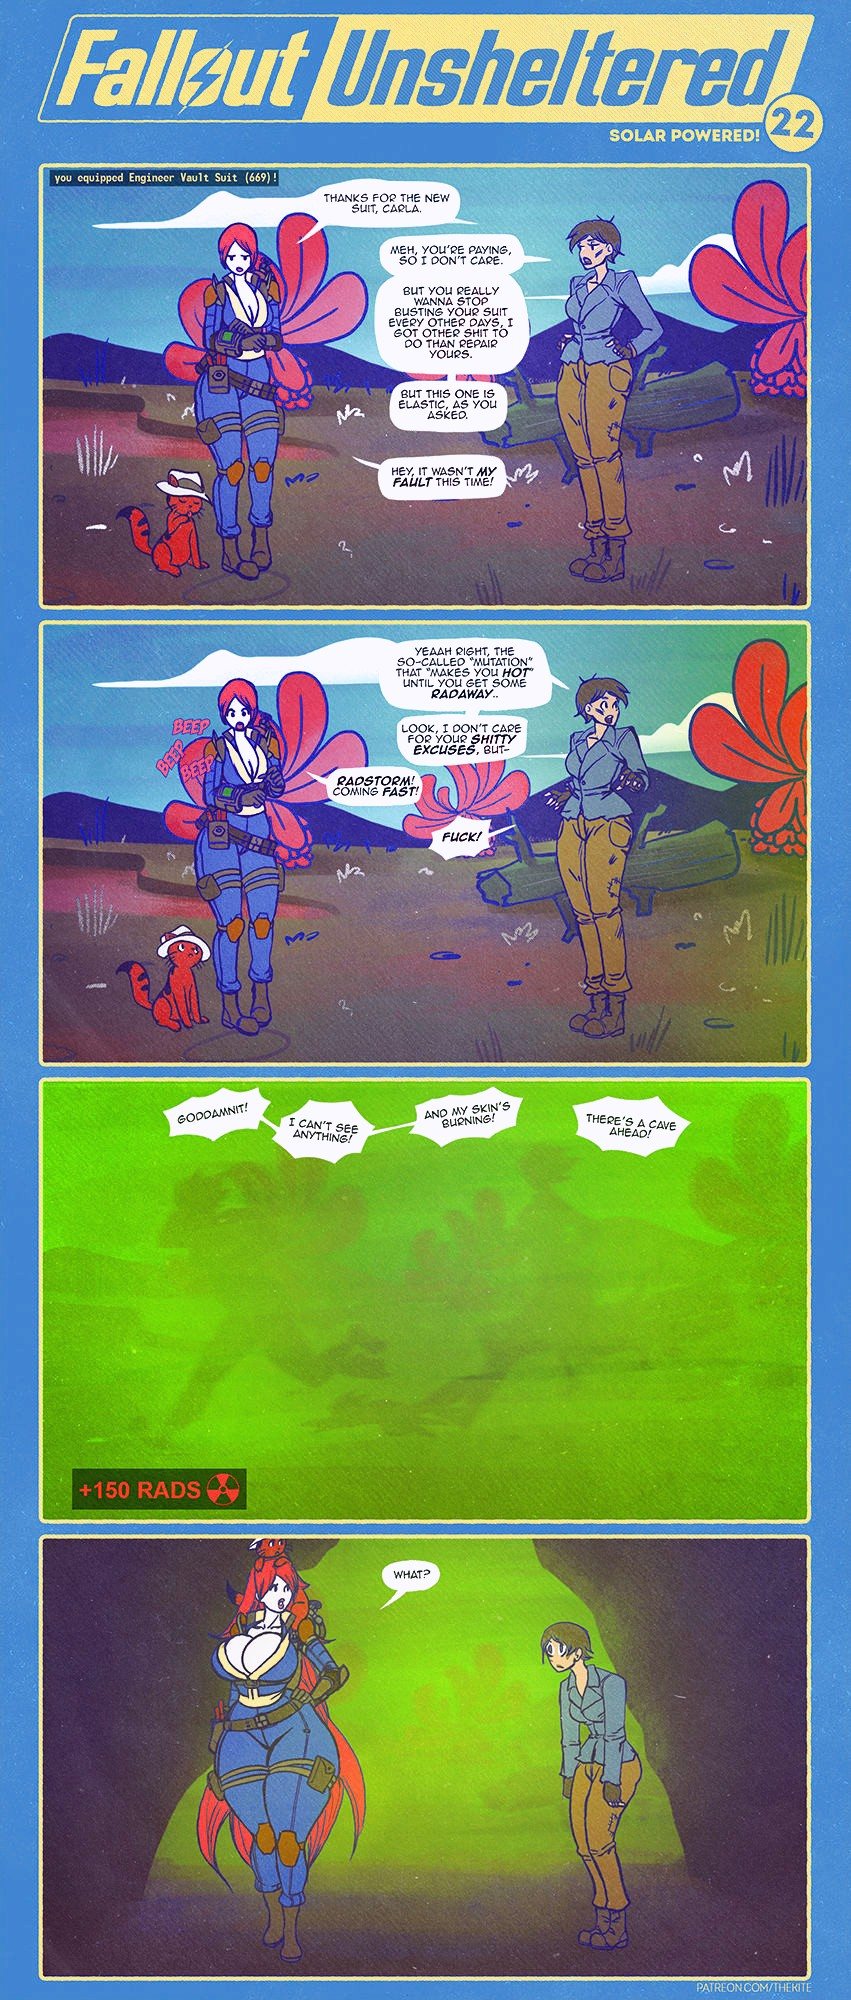 Fallout Unsheltered page 25